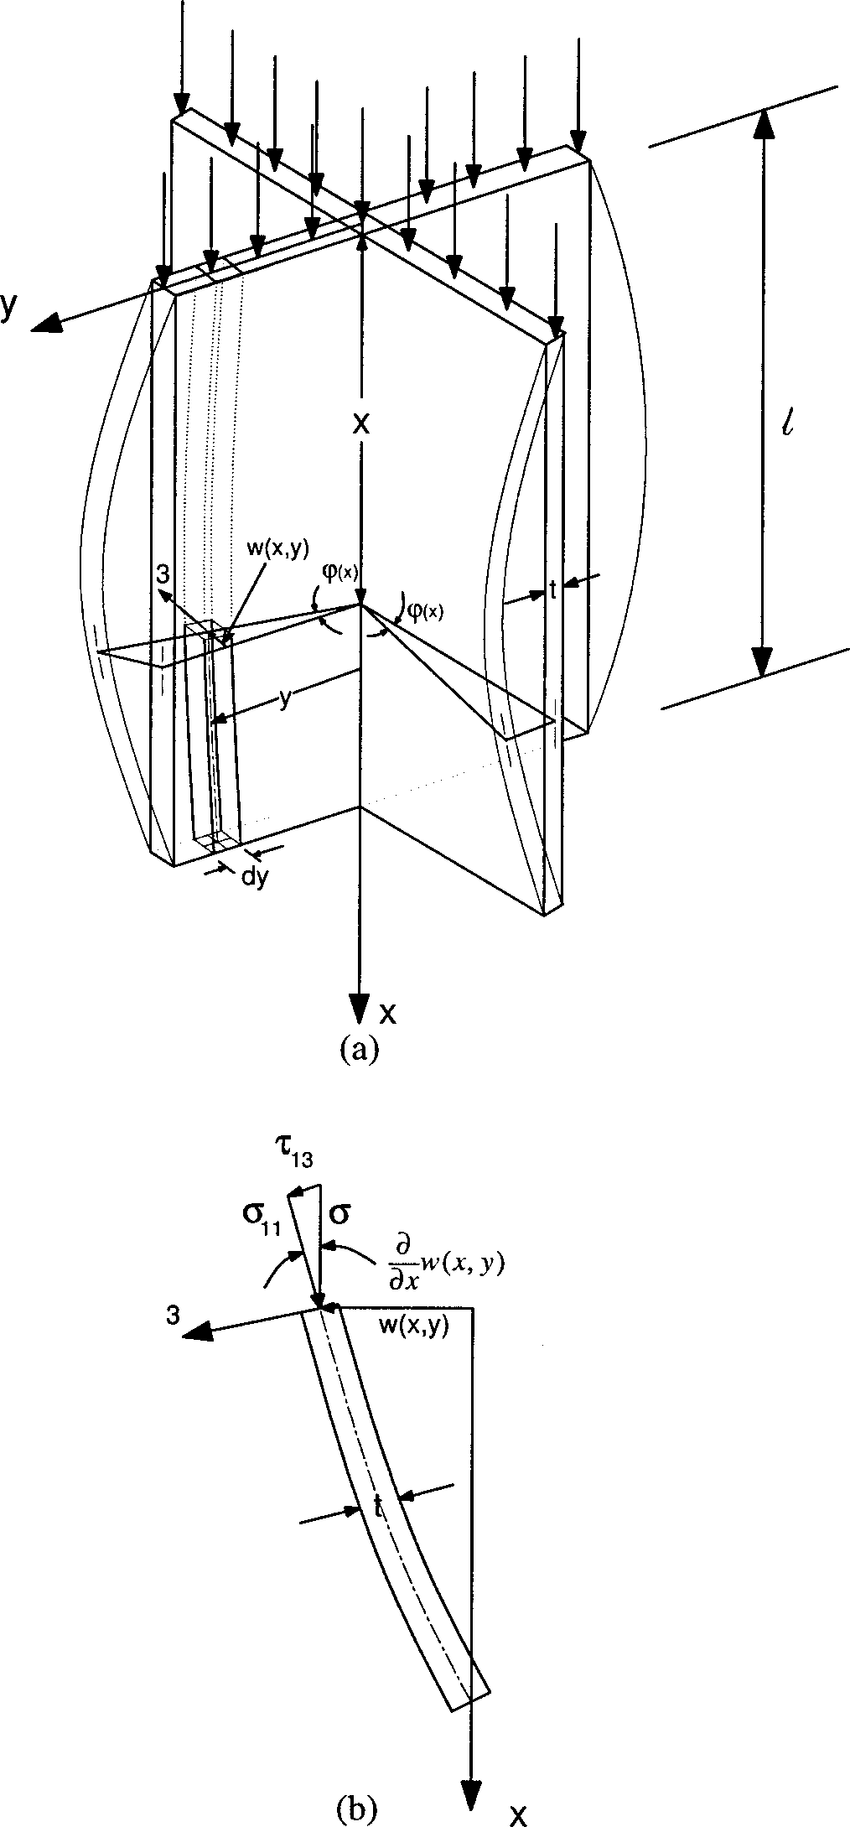 medium resolution of a schematic of a cruciform column under axial compression geometry of flanges has bifurcated